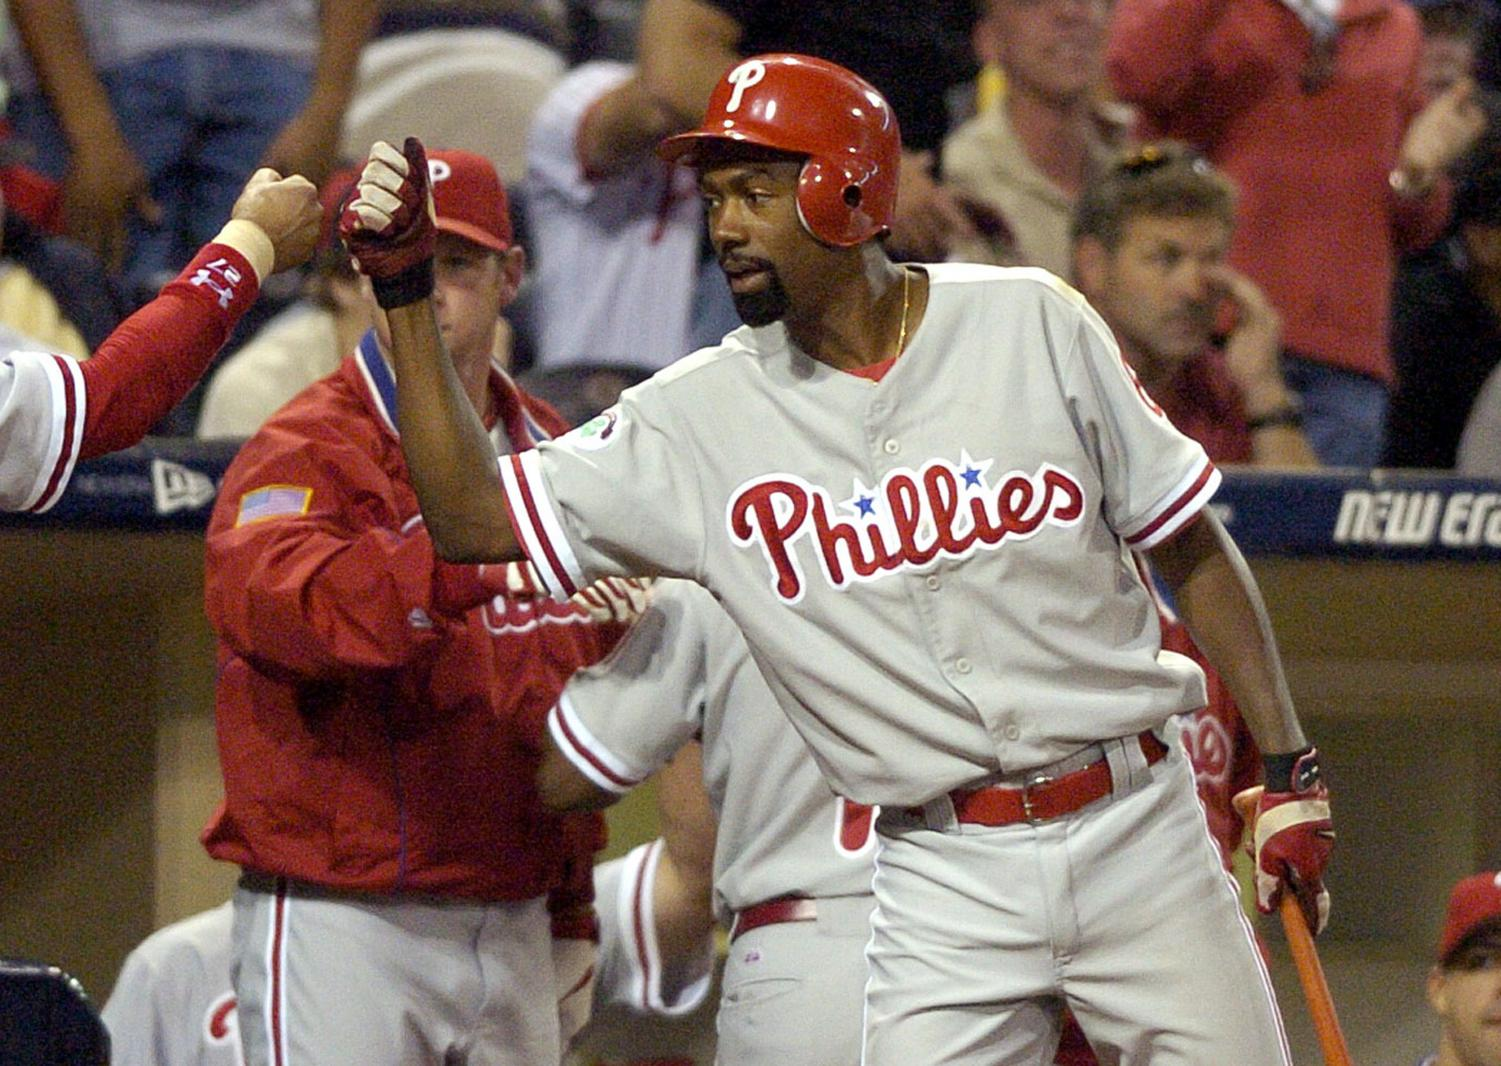 In this Aug. 5, 2004, file photo, Philadelphia Phillies' Doug Glanville congratulates a teammate in the 10th inning against the San Diego Padres in San Diego. The Chicago Cubs say they're investigating a fan using what appeared to be an offensive hand gesture associated with racism behind Glanville, now a television reporter, who was on the air for NBC Sports Chicago.